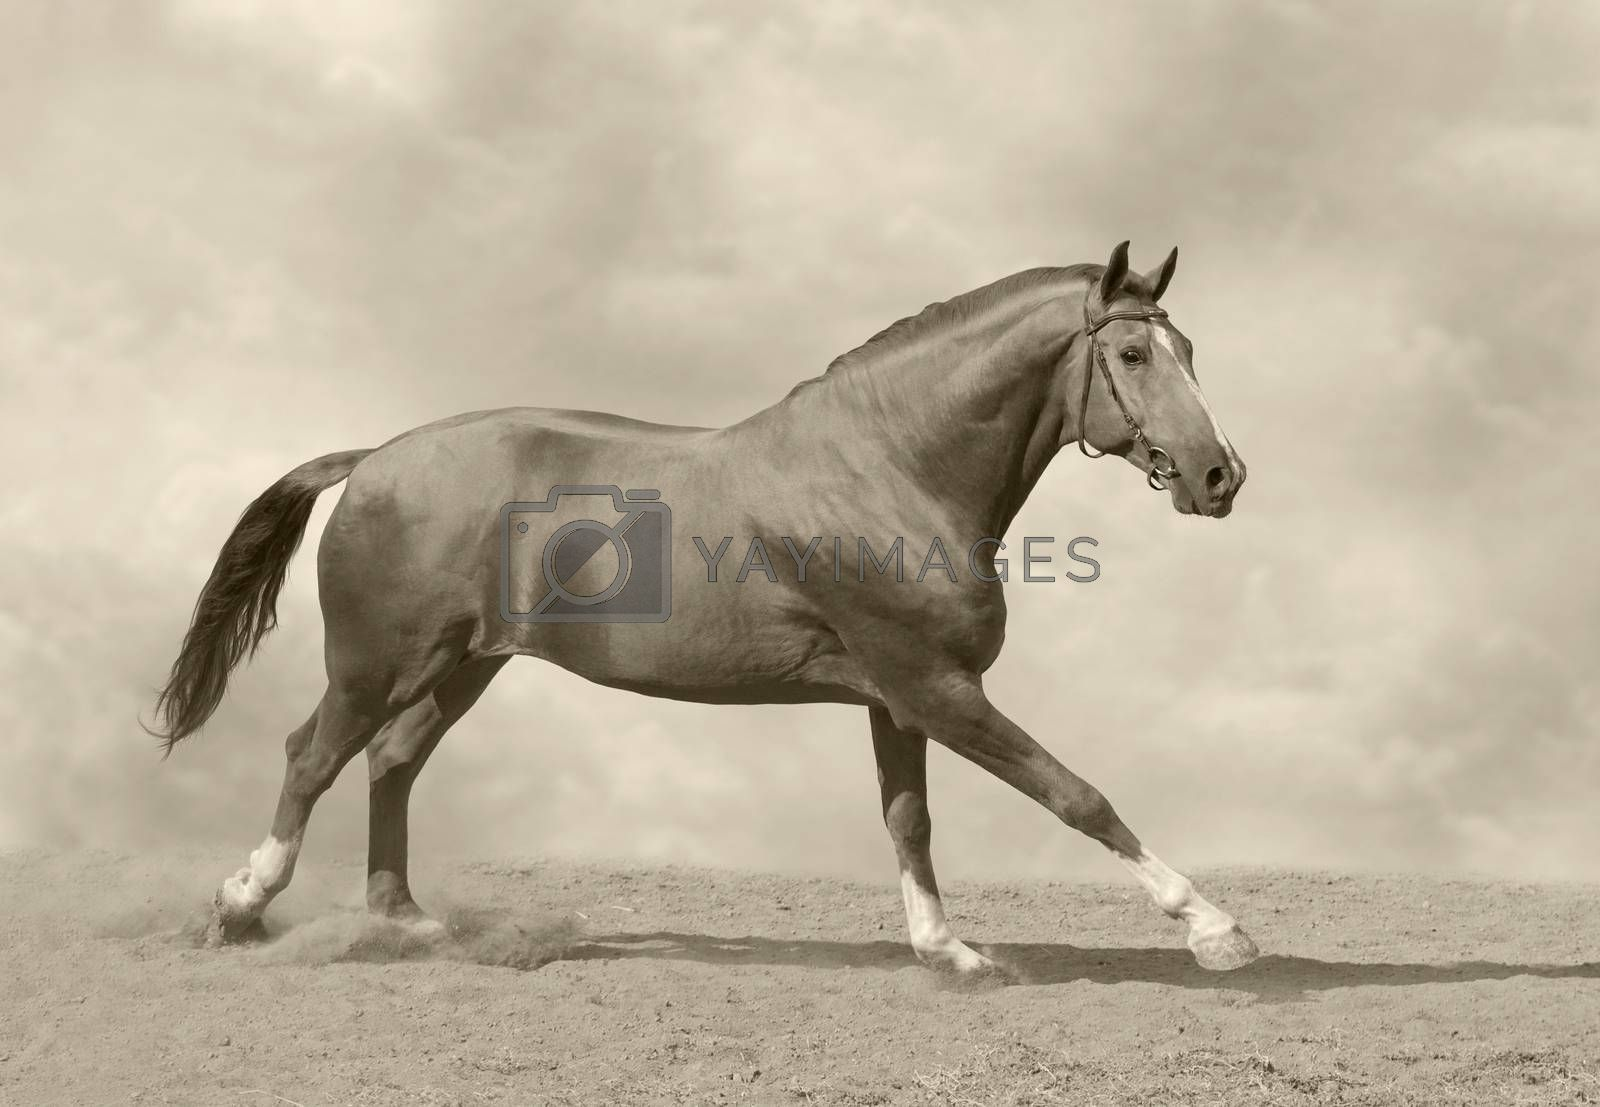 Horse galloping in sand and dust. Toned image.